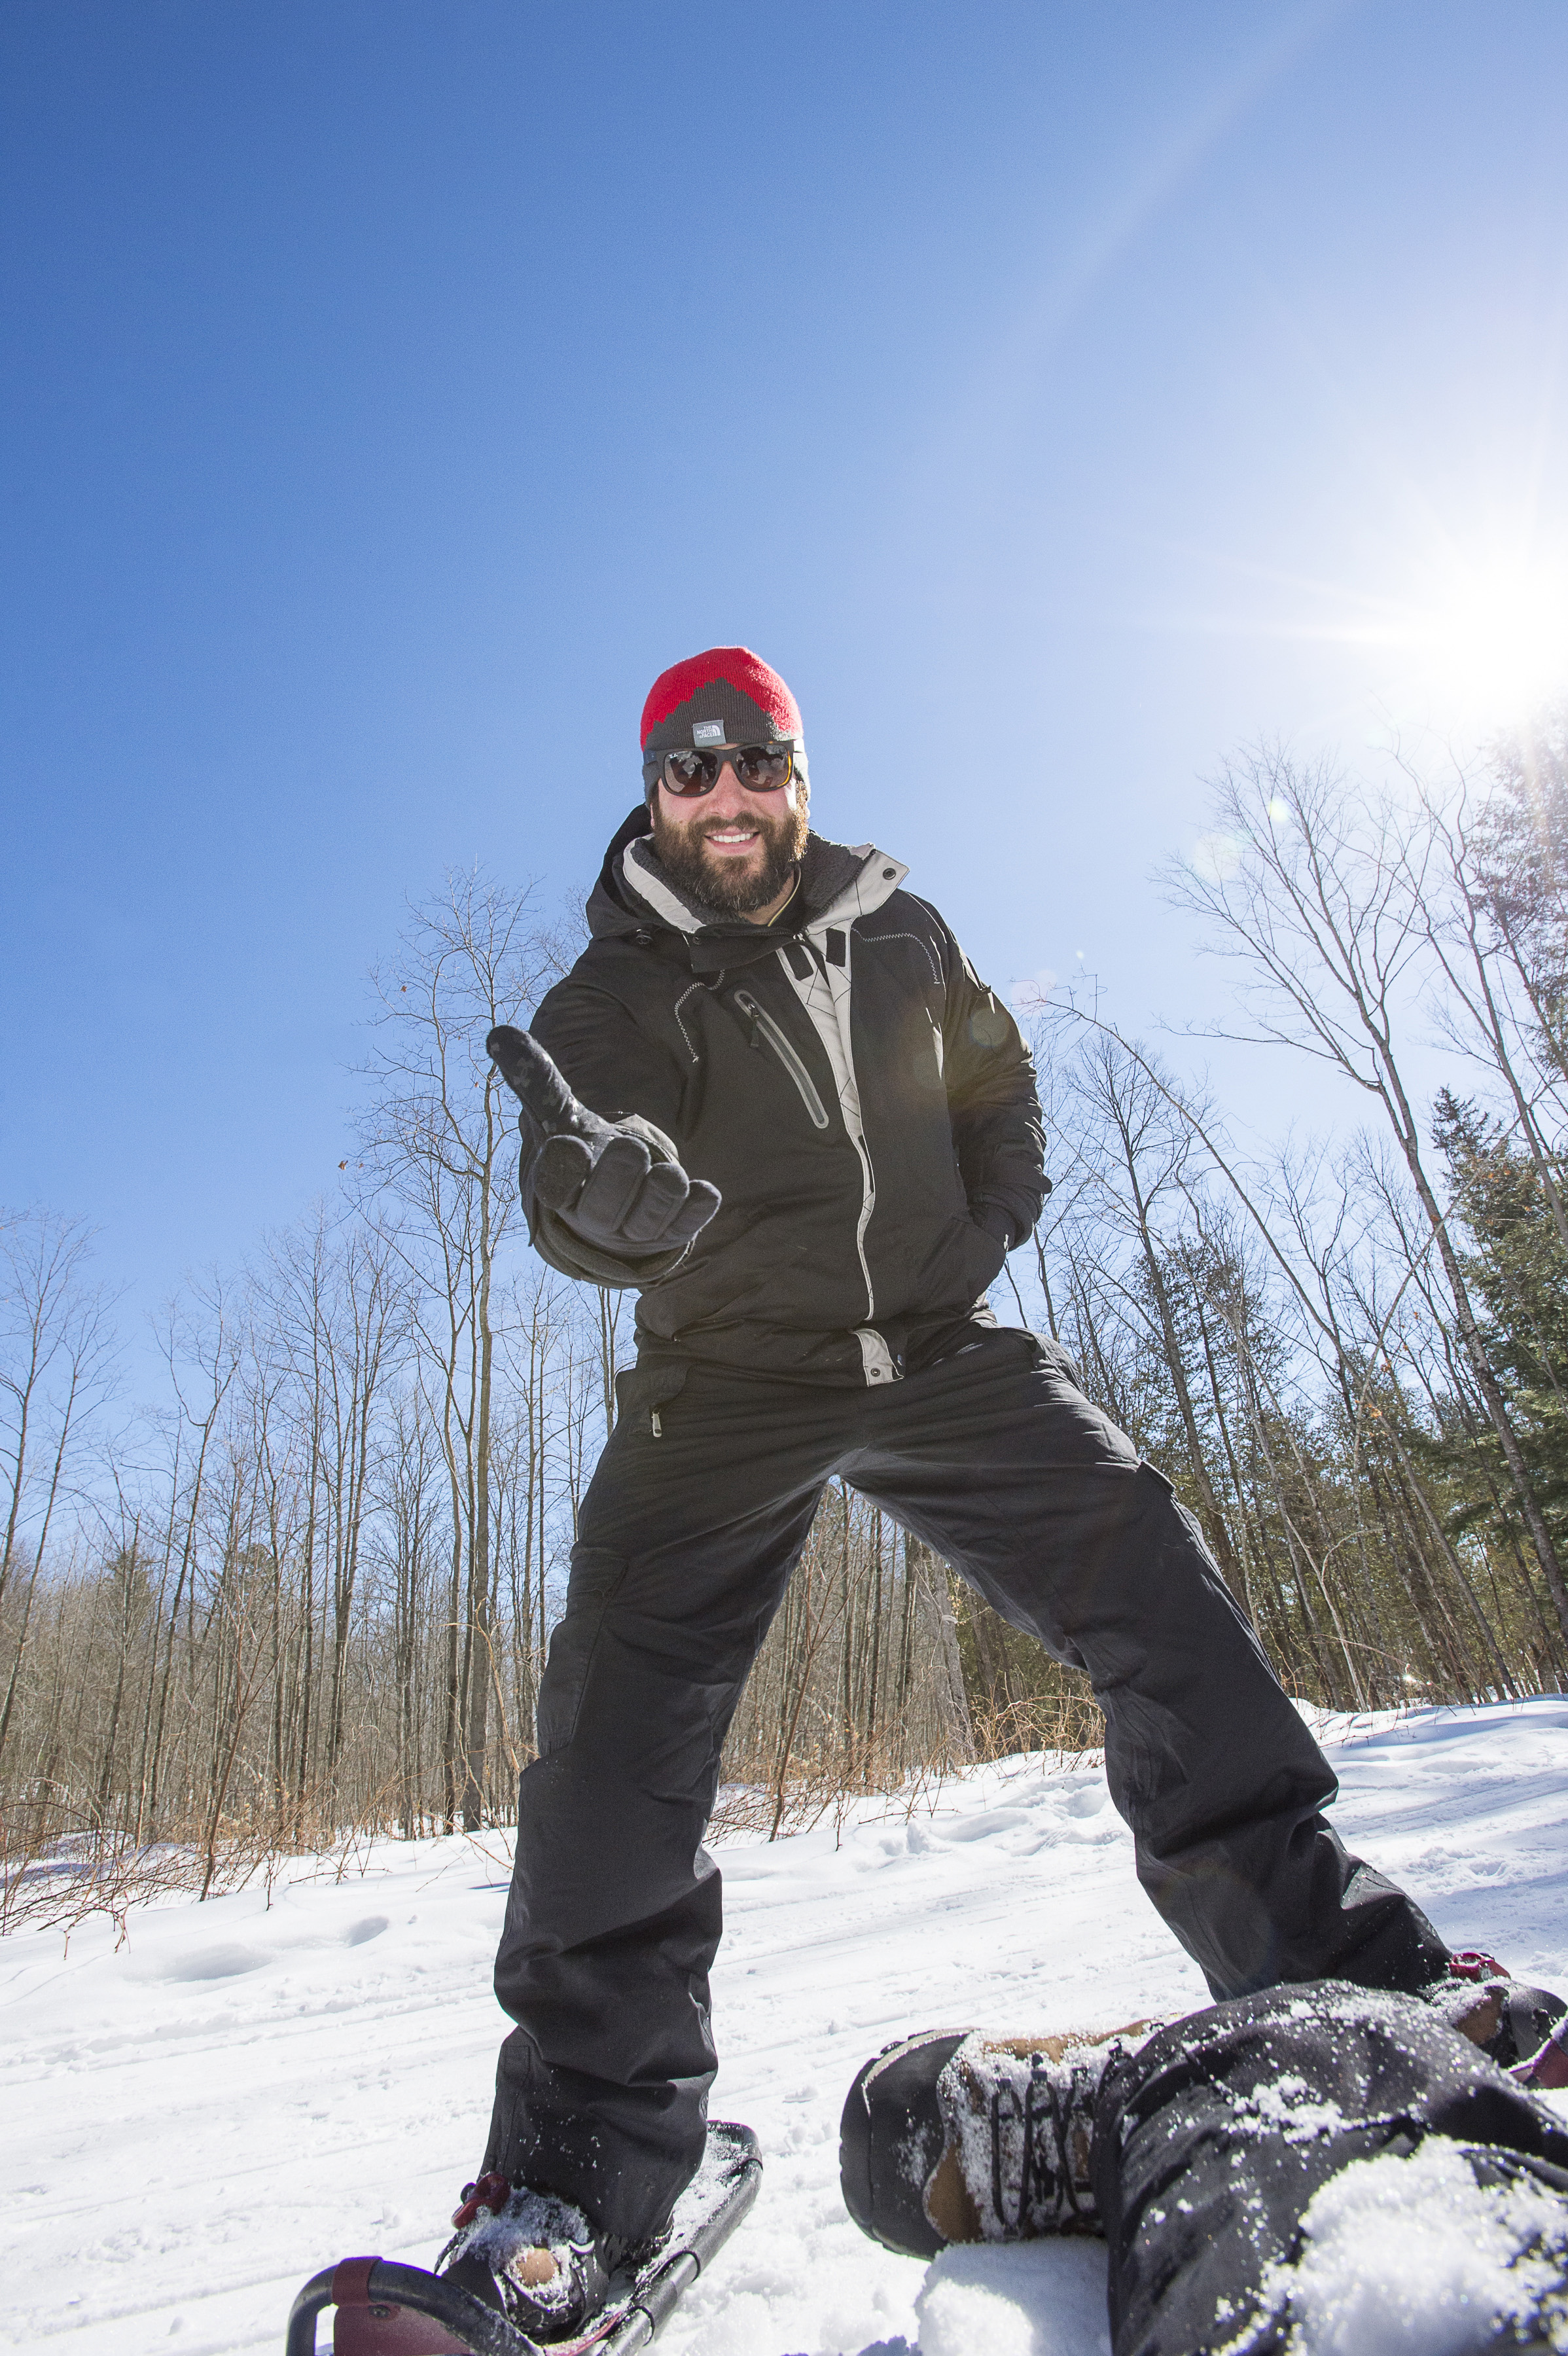 RECREATION _ SNOWSHOEING _ OHTO PHOTOSHOOT _ WINTER _ CREDIT TO TREVOR LUSH _ VERBAL PERMISSION _ 2014 (1)